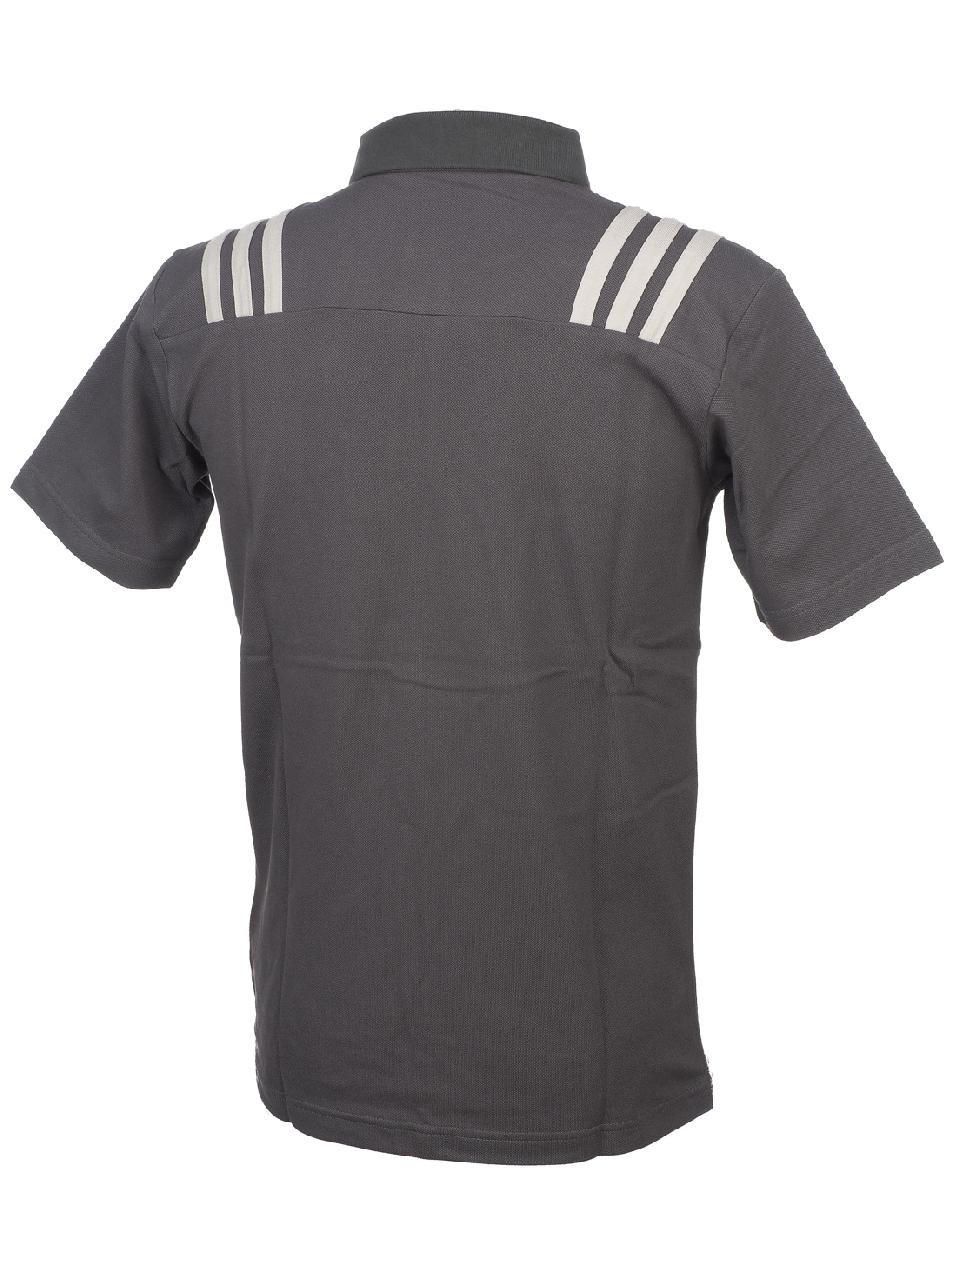 Polo-de-rugby-Adidas-All-black-polo-rugby-Gris-35911-Neuf